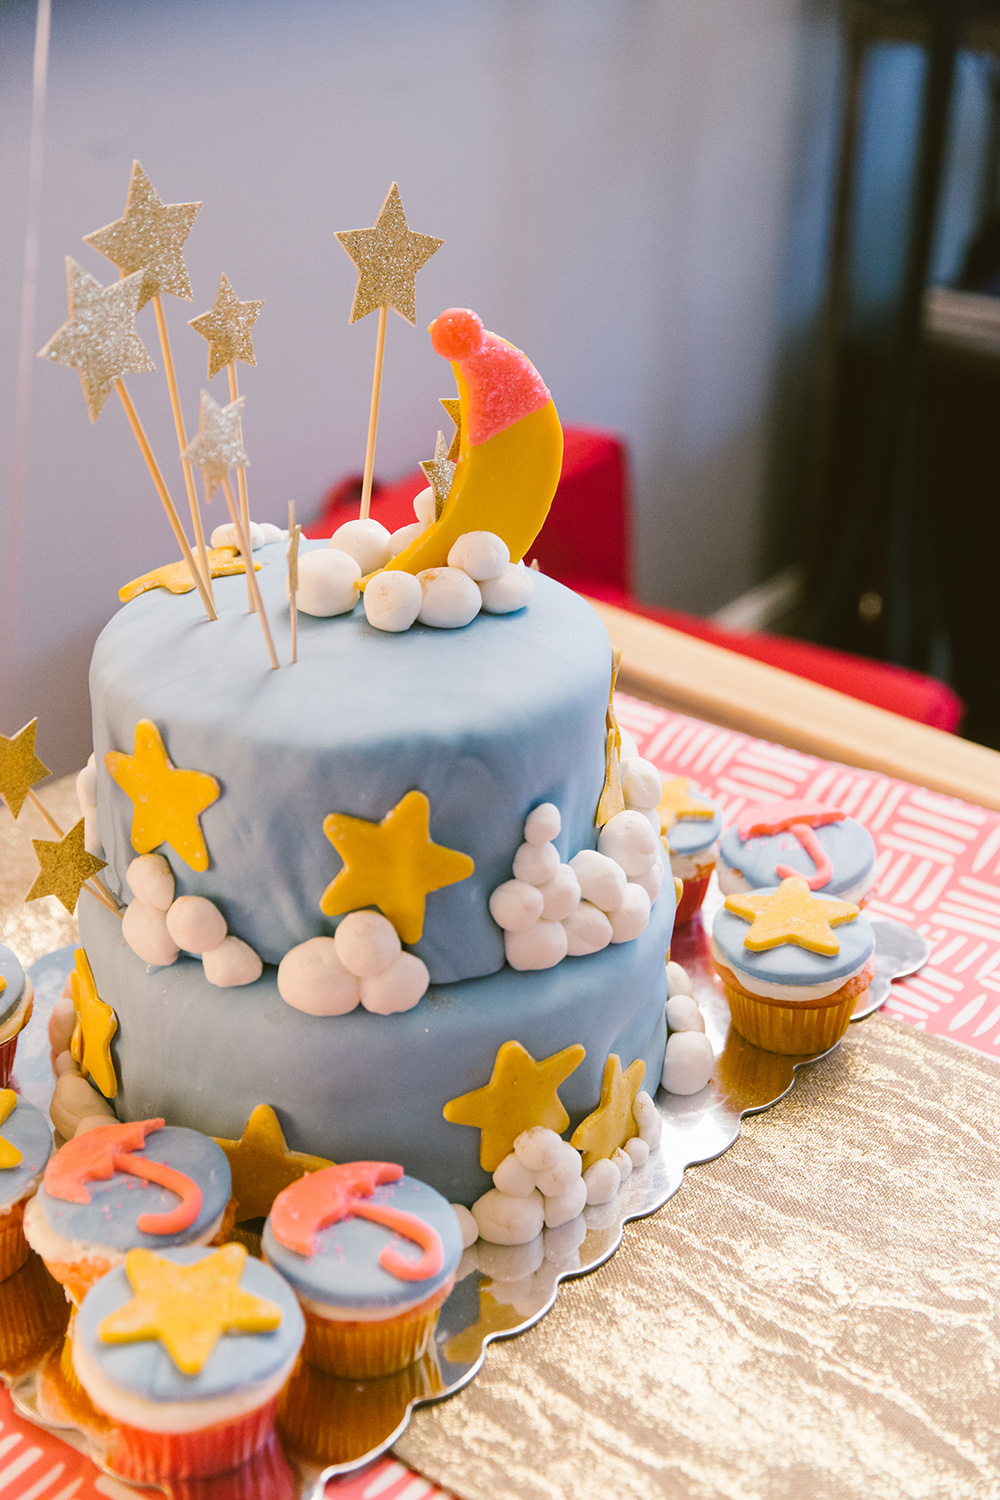 WEB_2015_April_BabyShower_EuniceDockery_0016.jpg